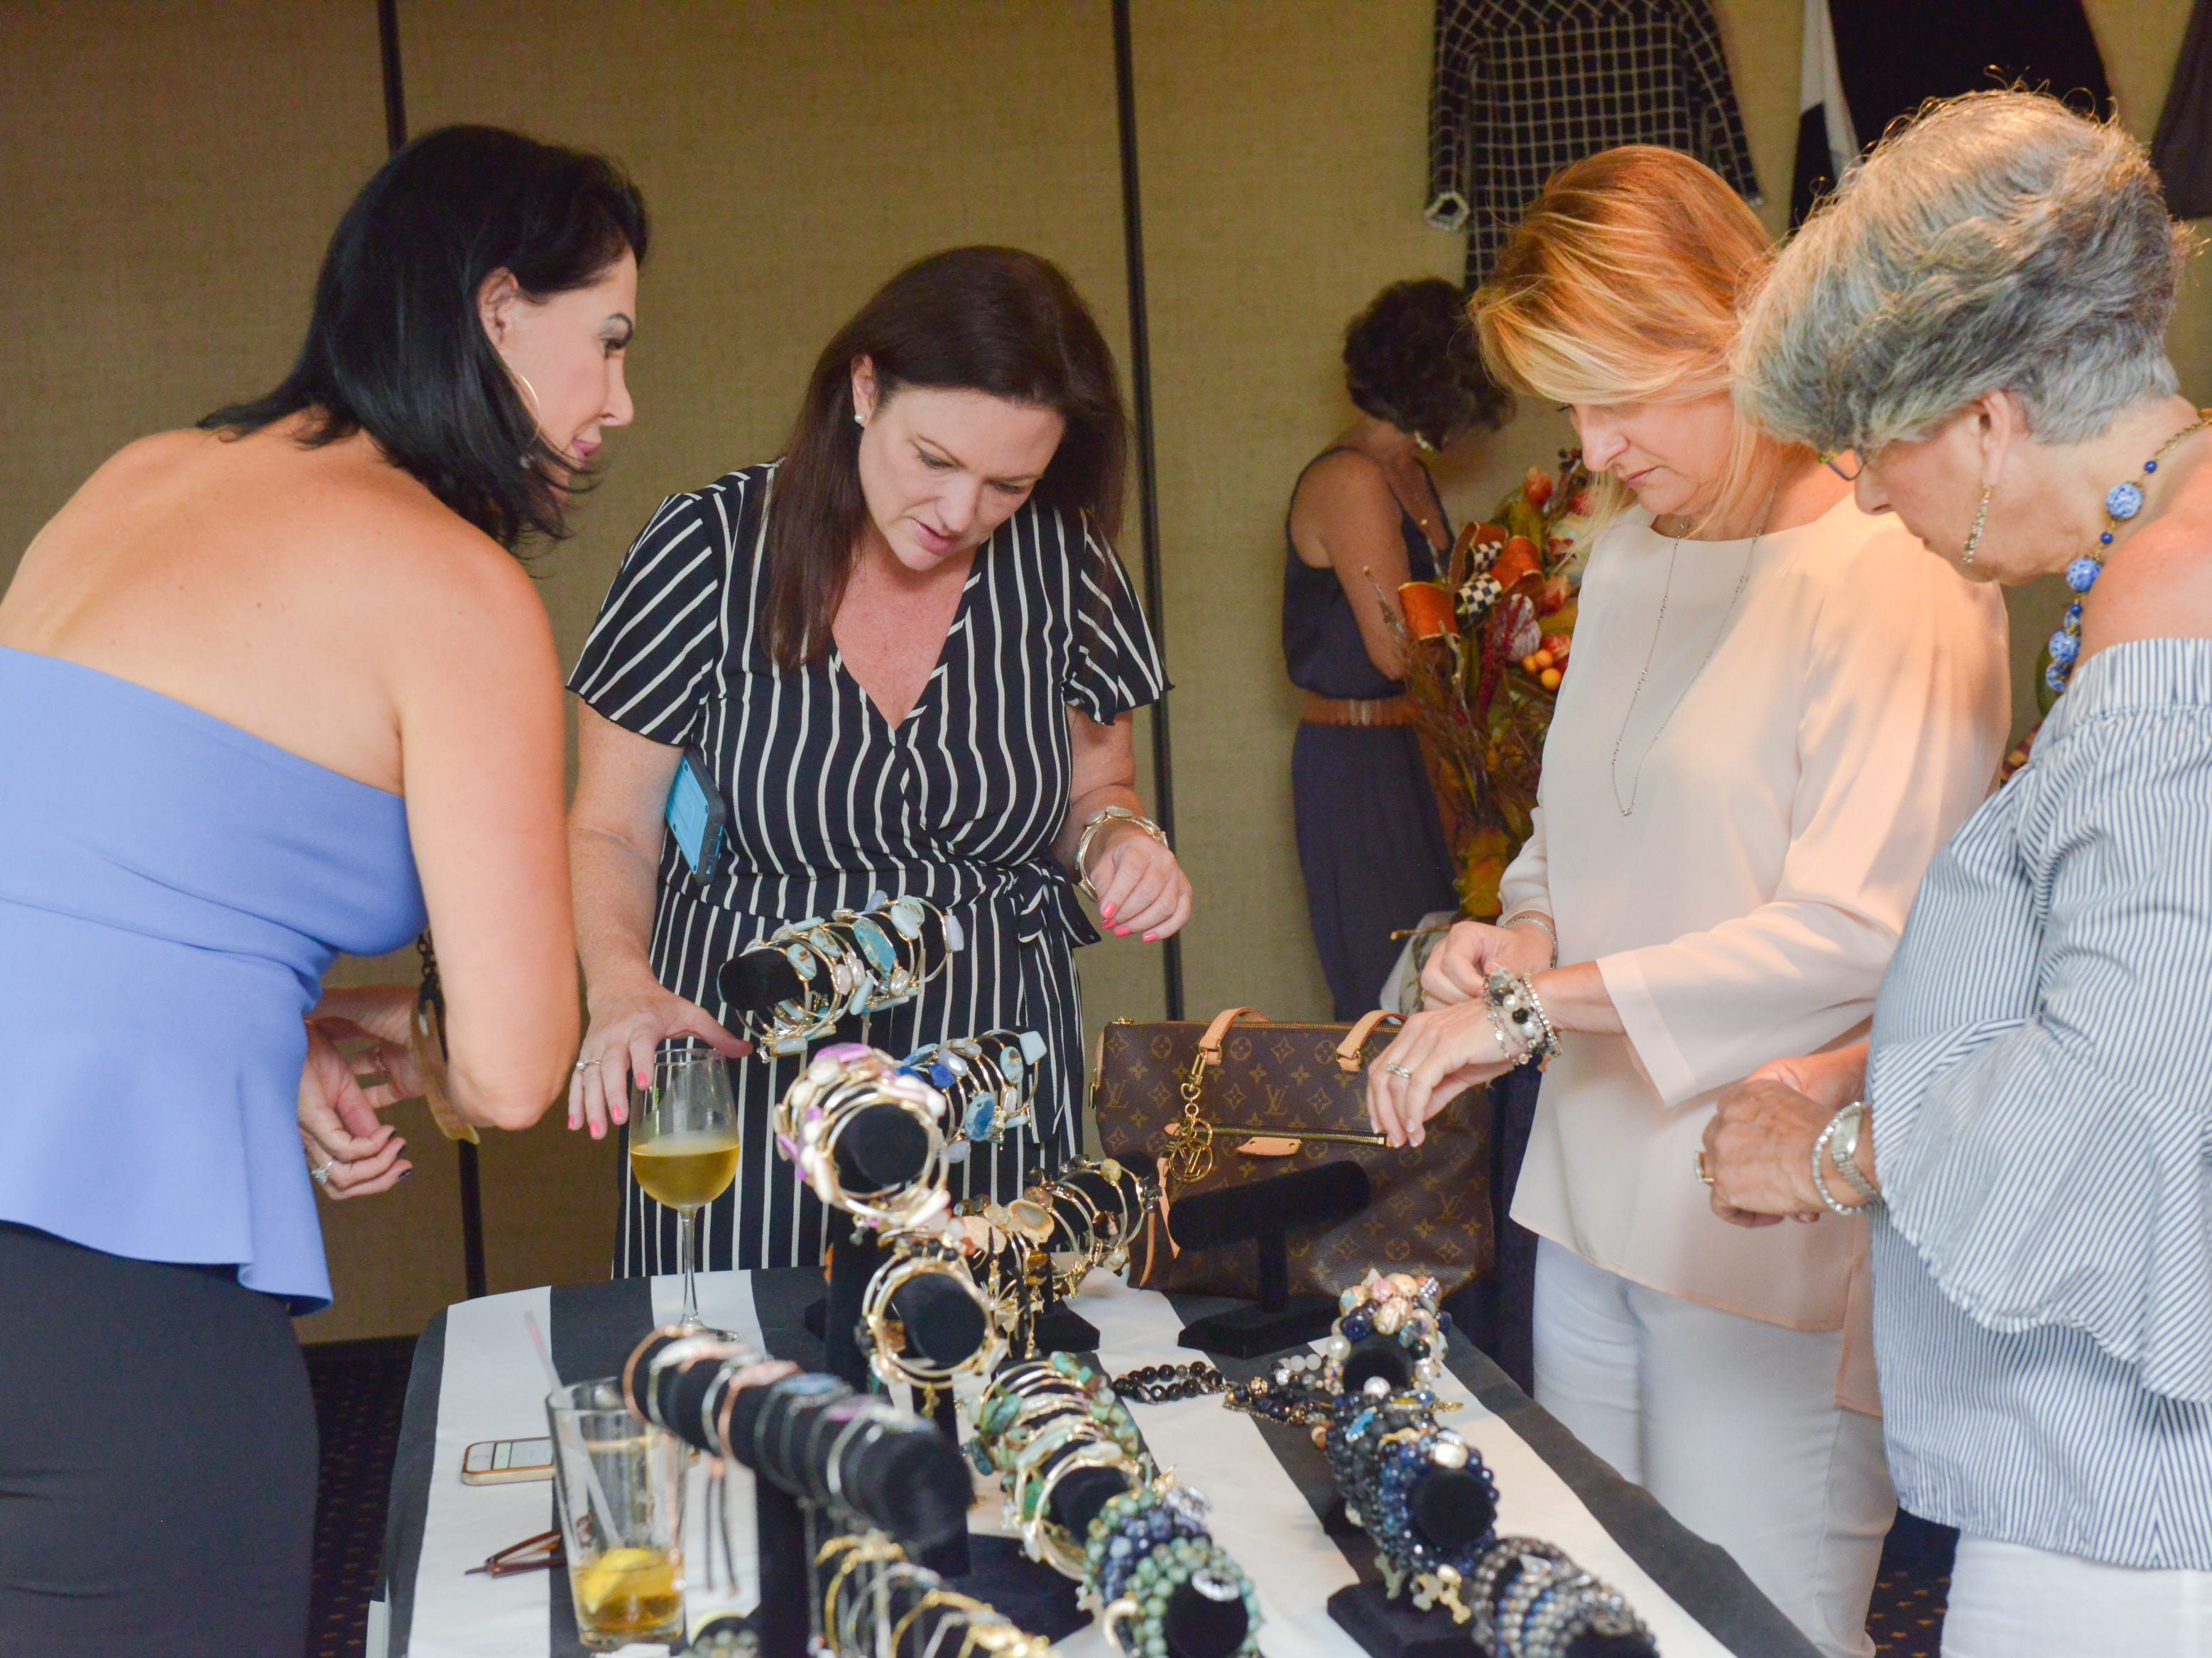 Friends browse jewelry made by Sandra Dee Russell at Friends of Sally's House luncheon at the Eau Gallie Yacht Club.